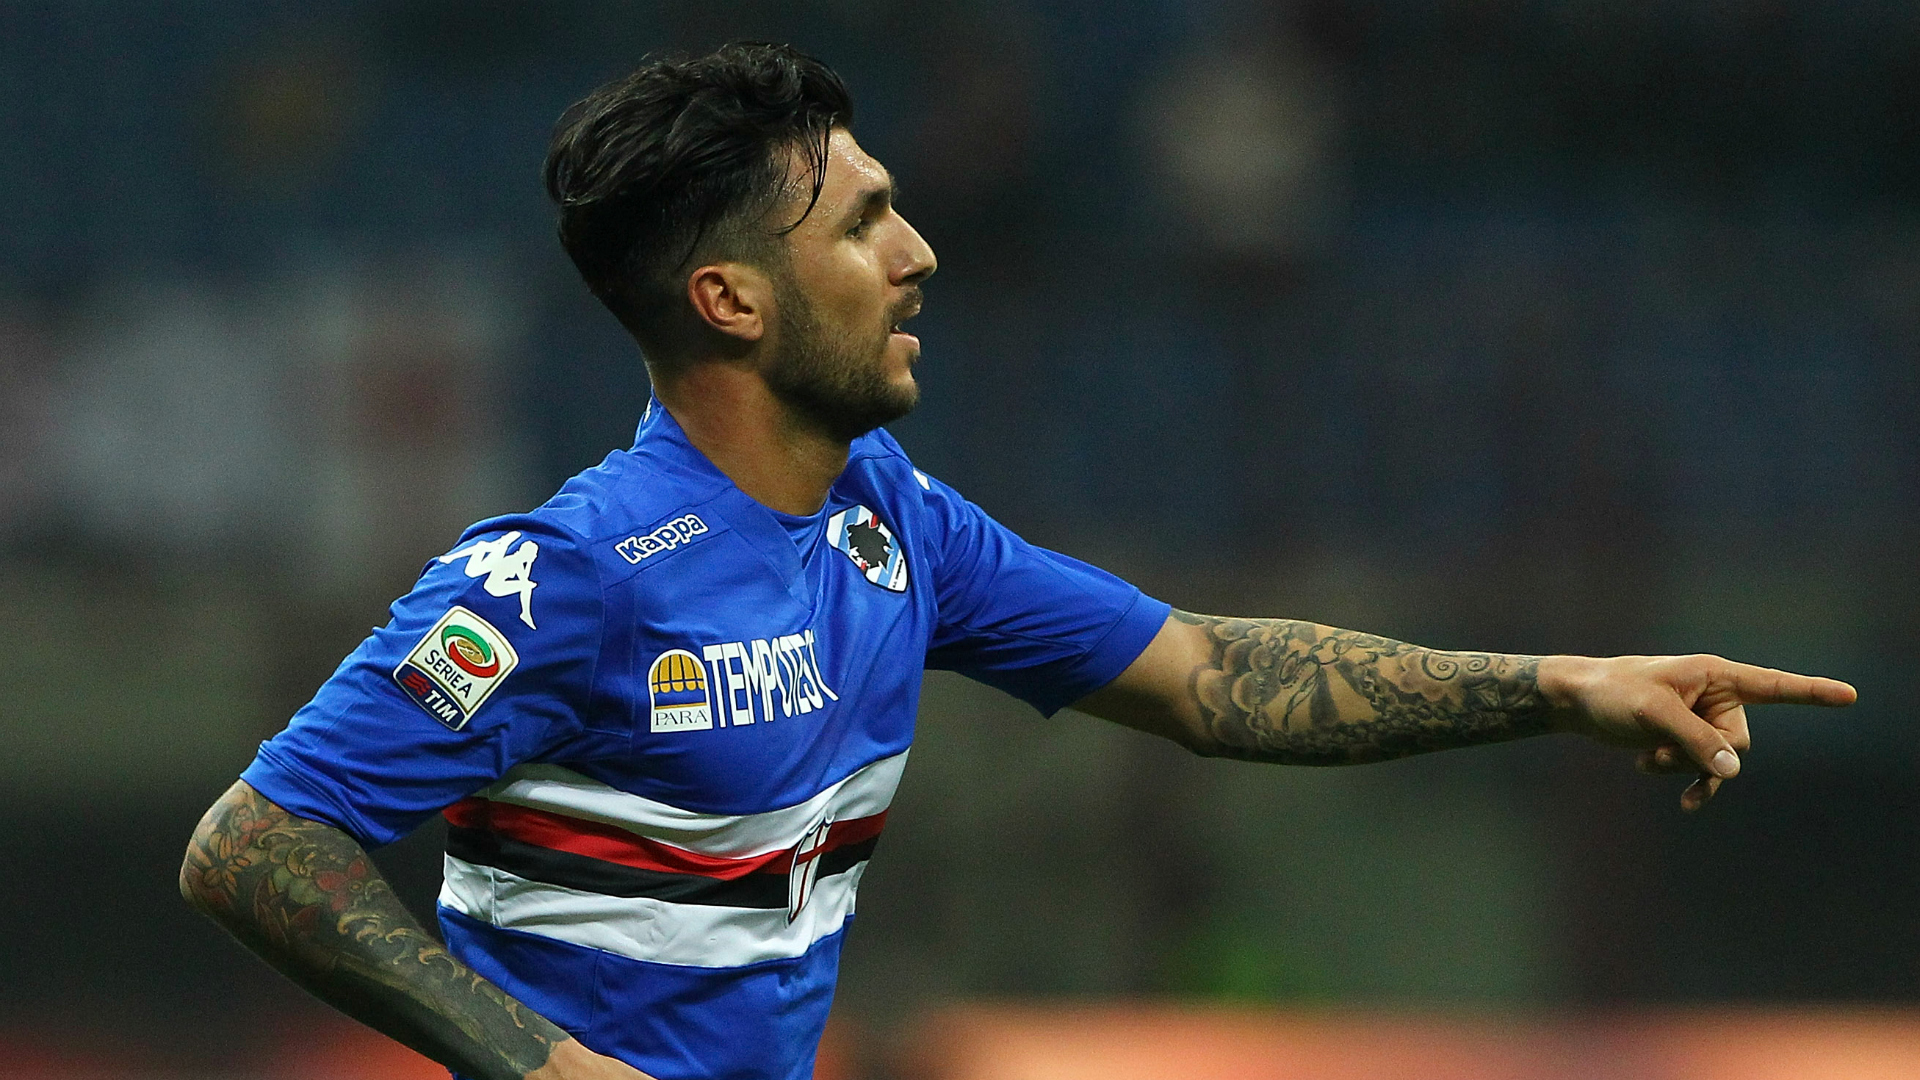 roberto-soriano-celebrating-milan-sampdoria-serie-a-12042015_oay1t27j21is14b43fbb05ljb